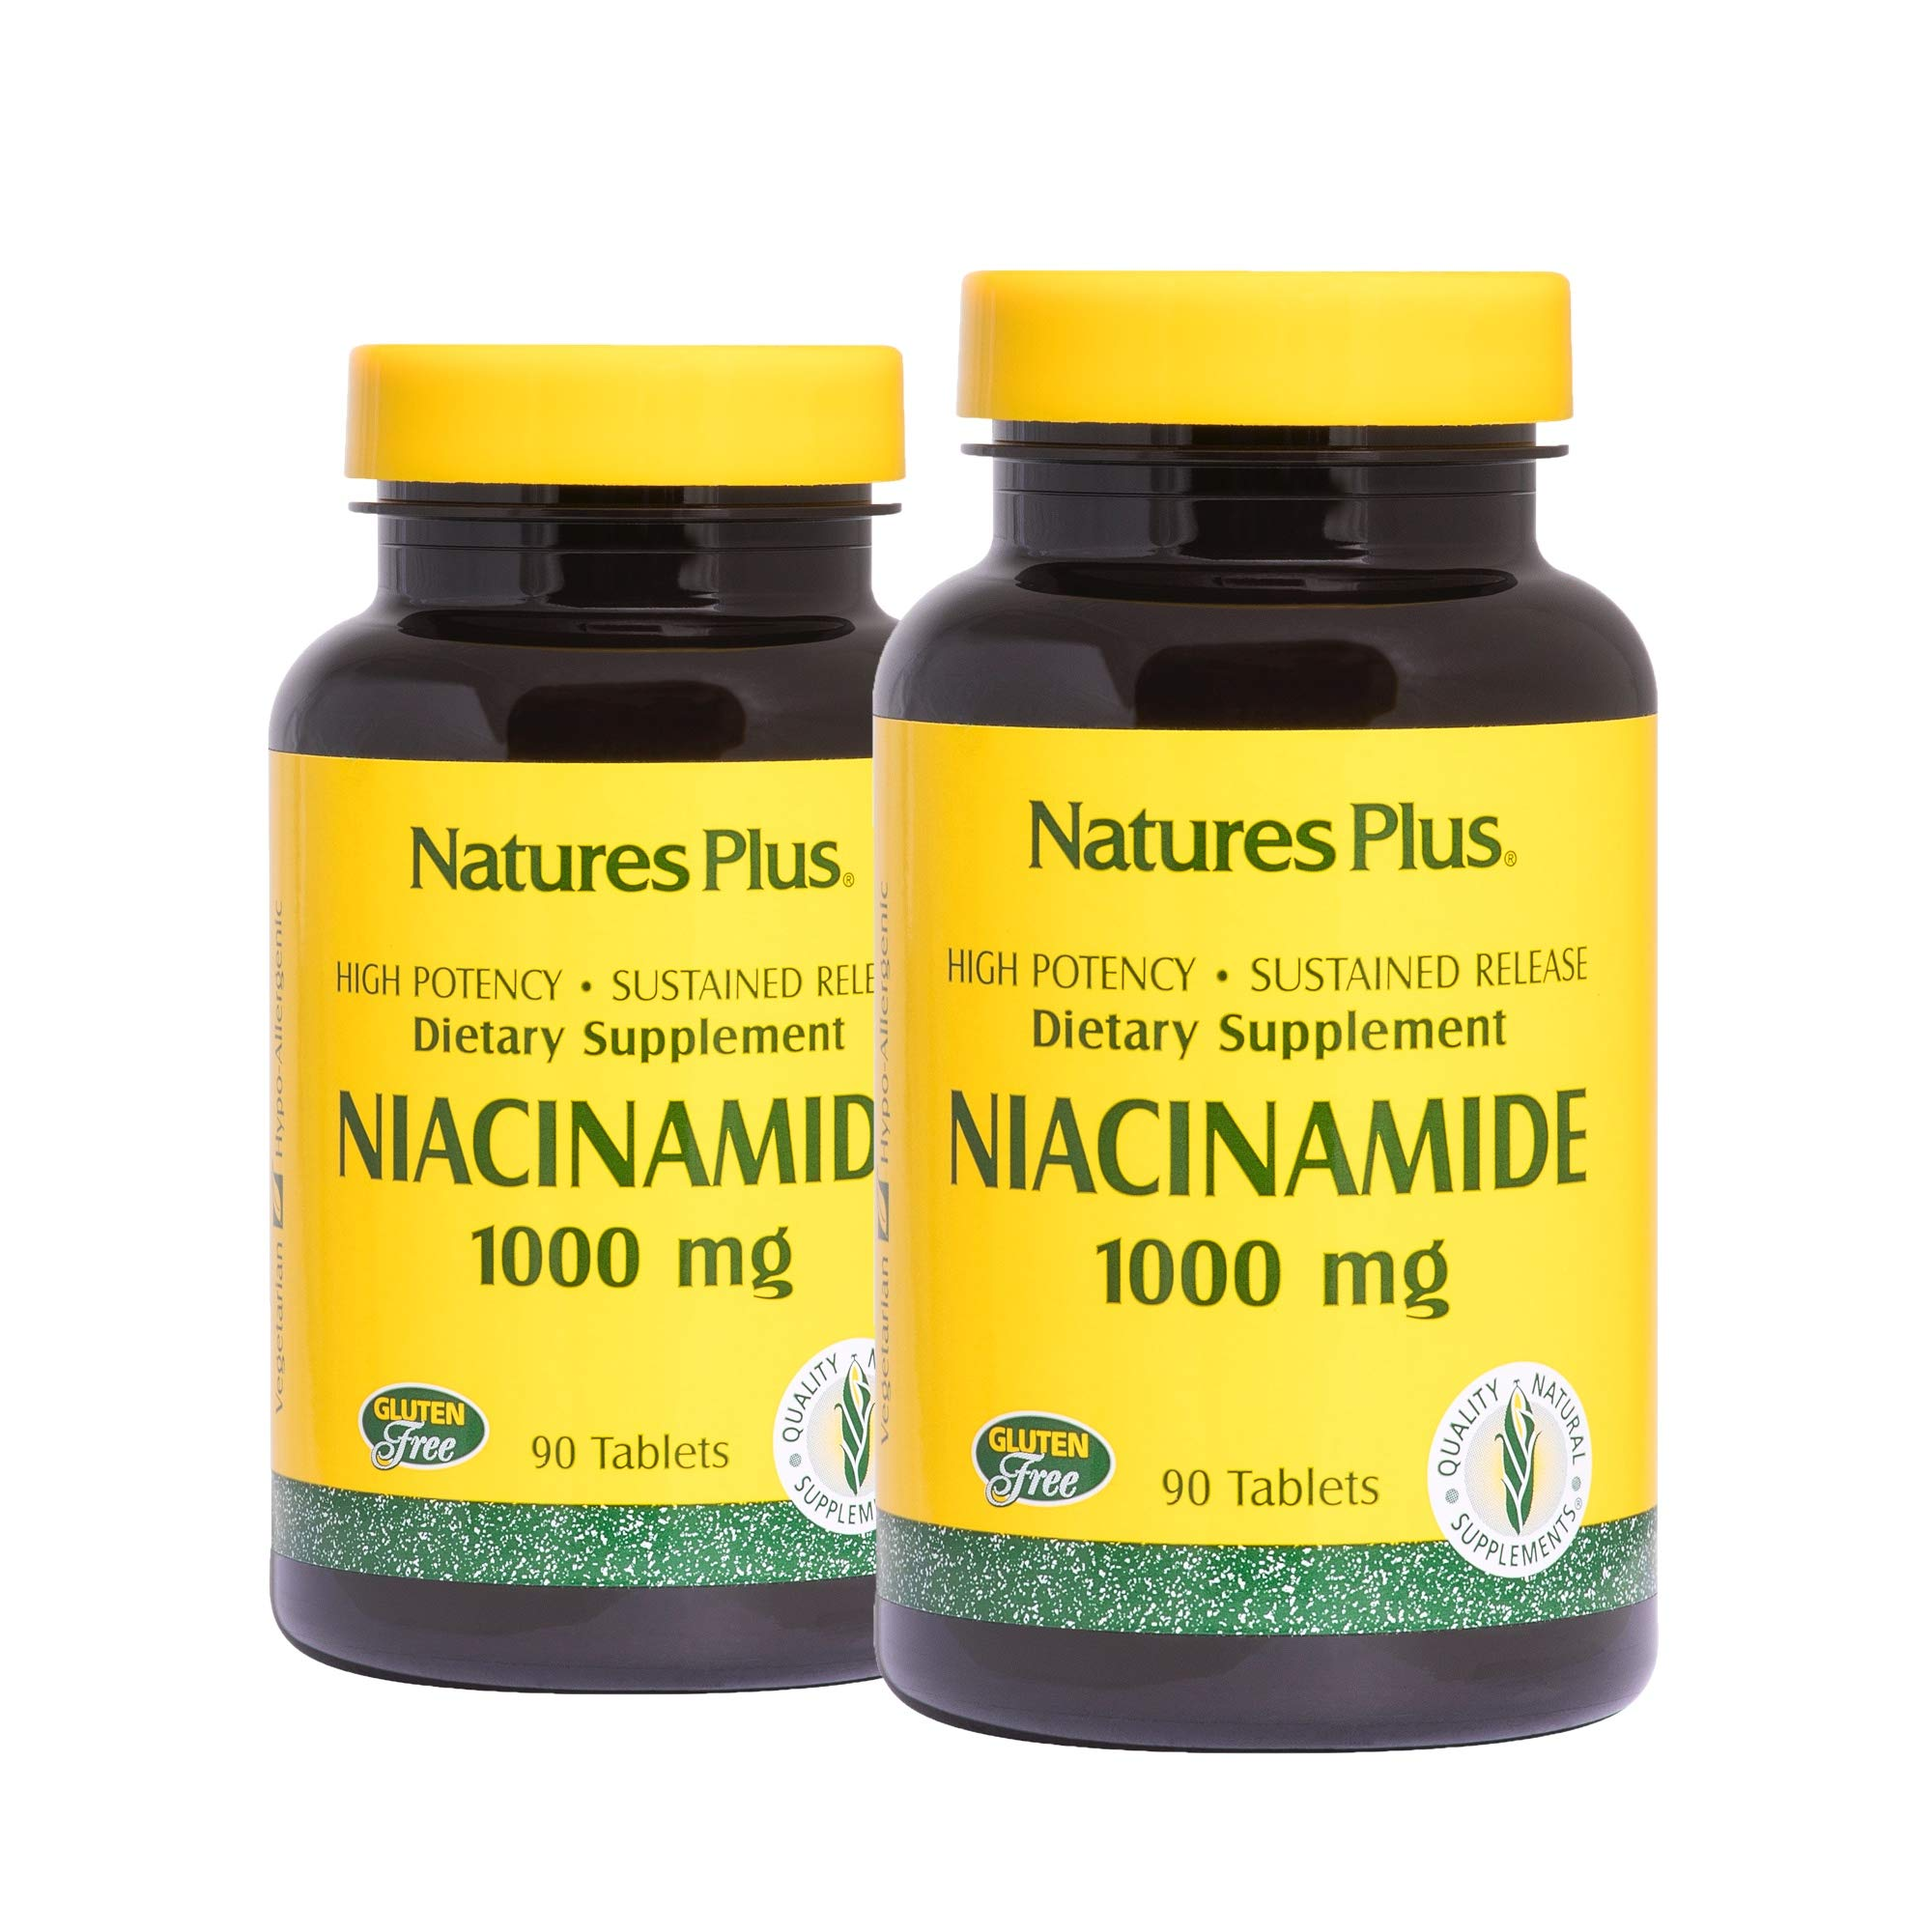 NaturesPlus Niacinamide, Sustained Release (2 Pack) - 1000 mg, 90 Vegetarian Tablets - High Potency Vitamin B3 Supplement, Promotes Lower Blood Pressure - Gluten-Free - 180 Total Servings